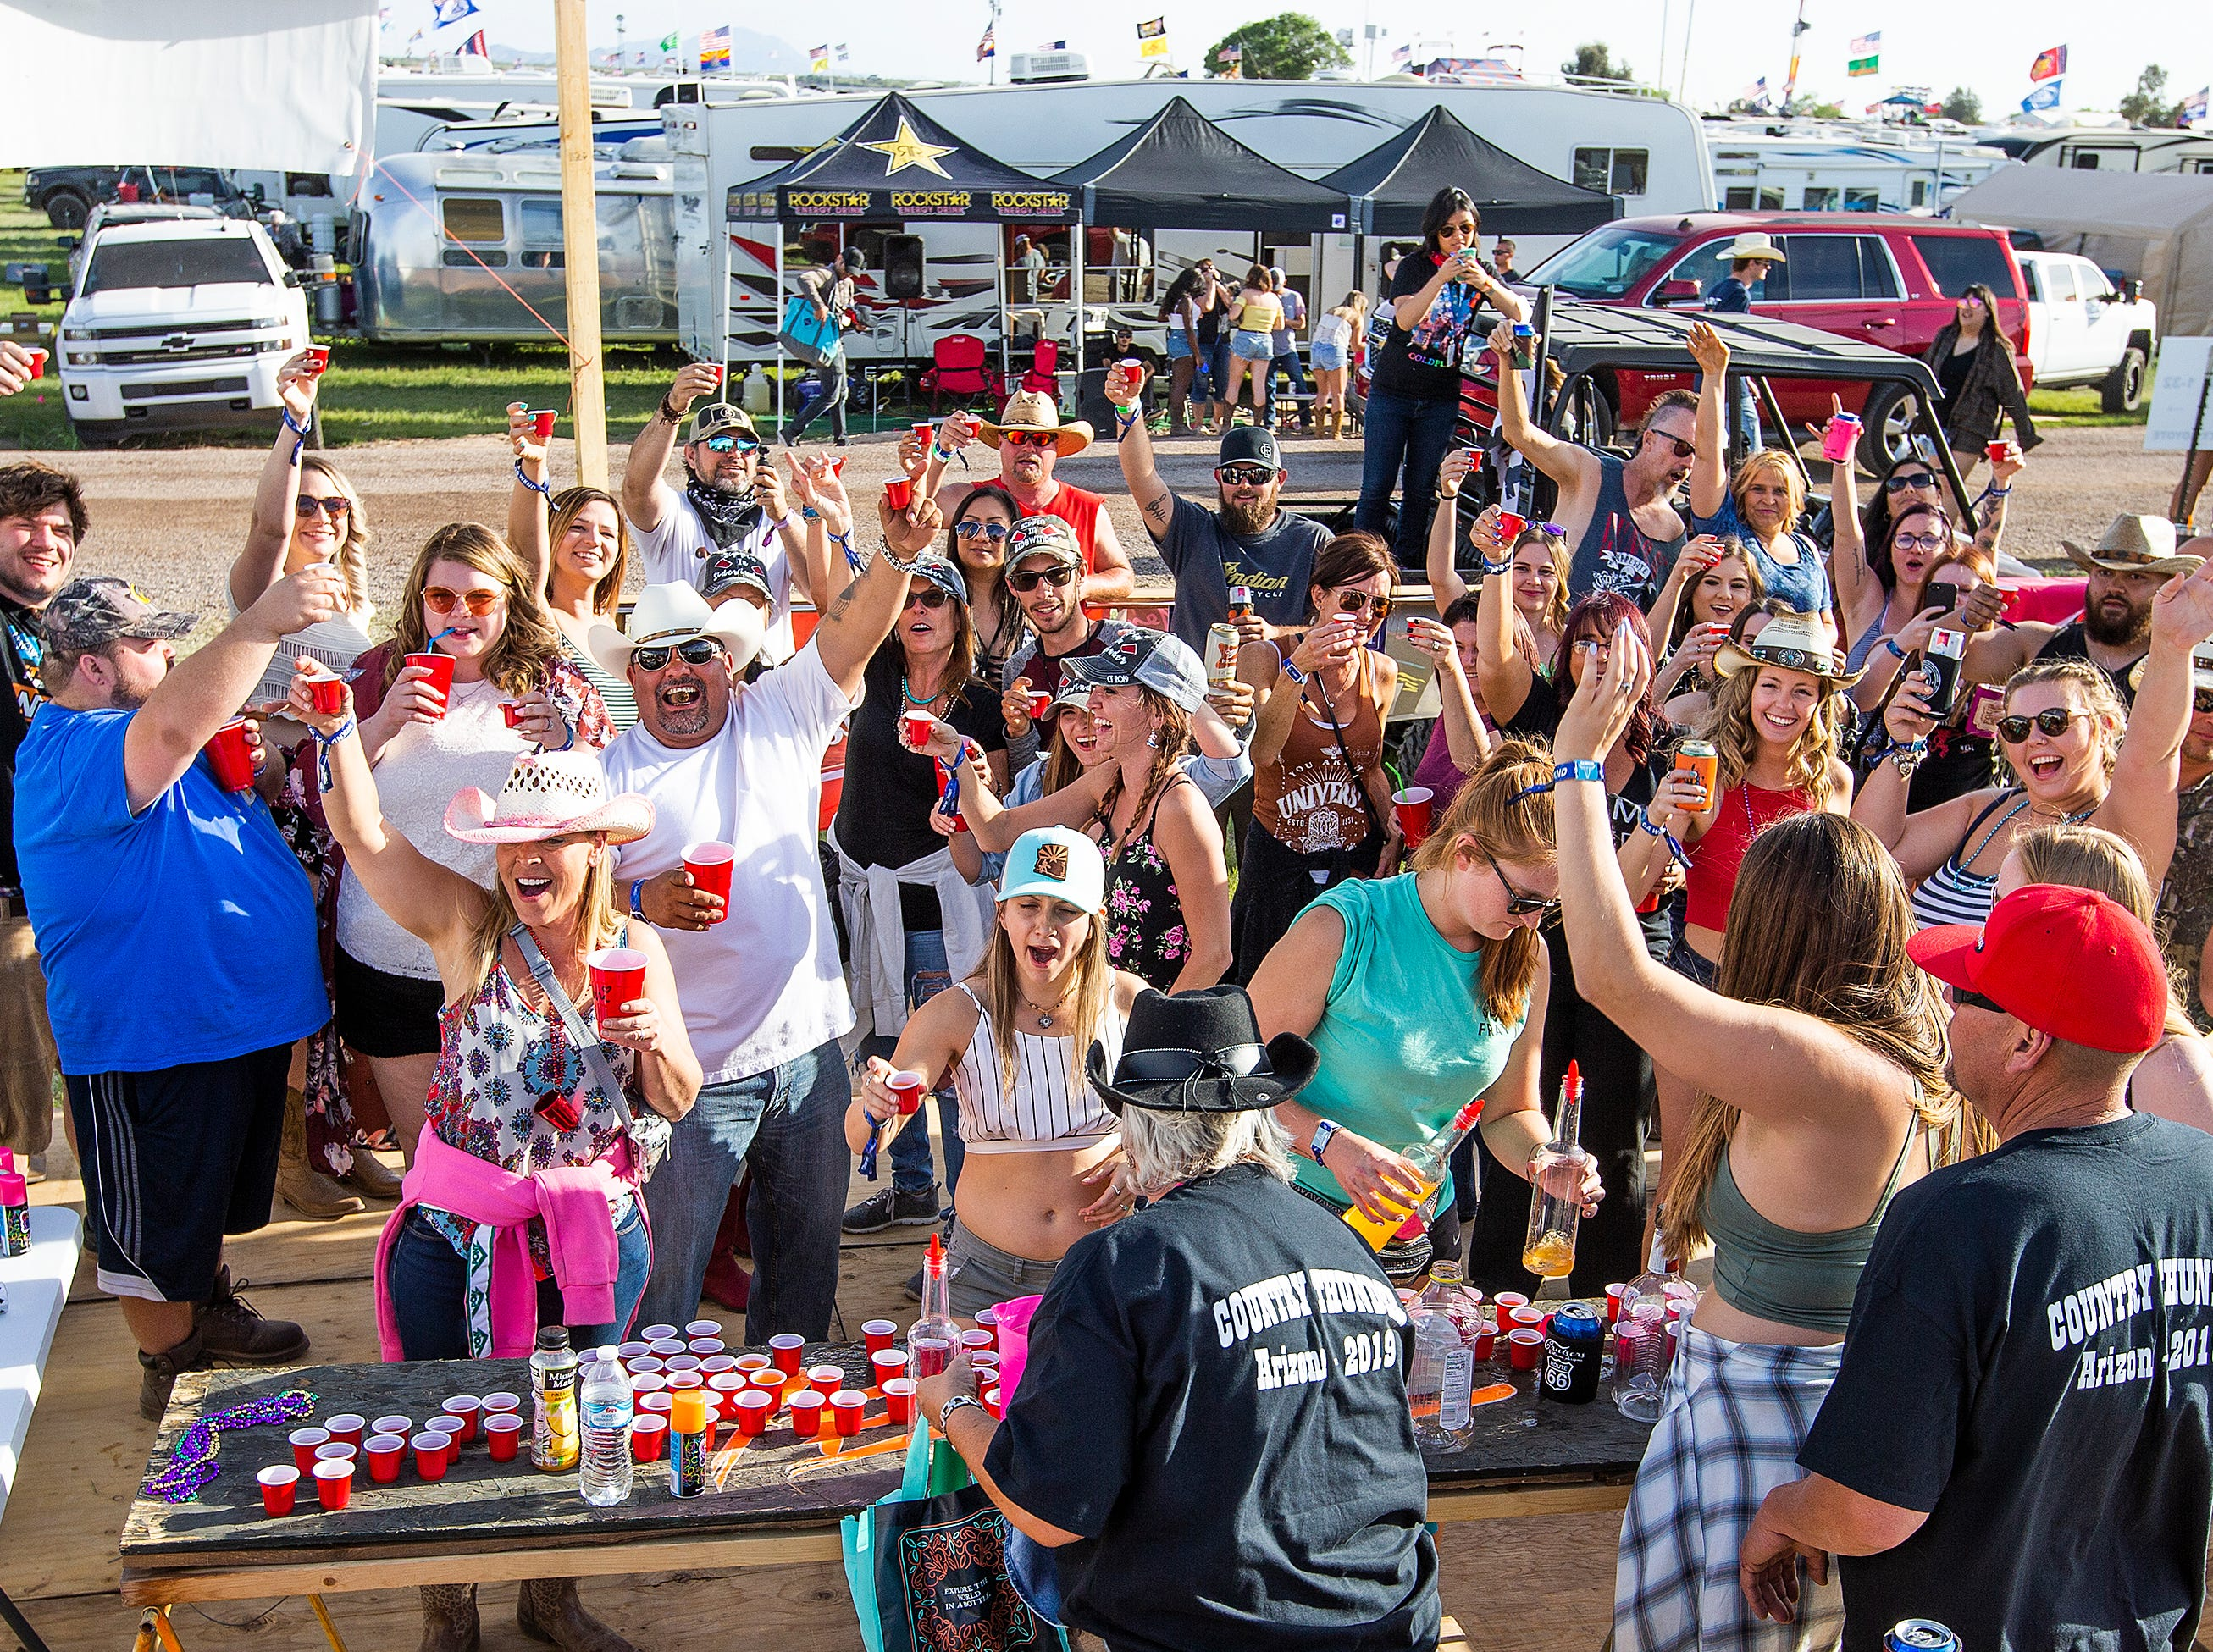 People make the first annual Country Thunder Arizona kickoff toast at Camp Burracho at the music festival on April 11, 2019.